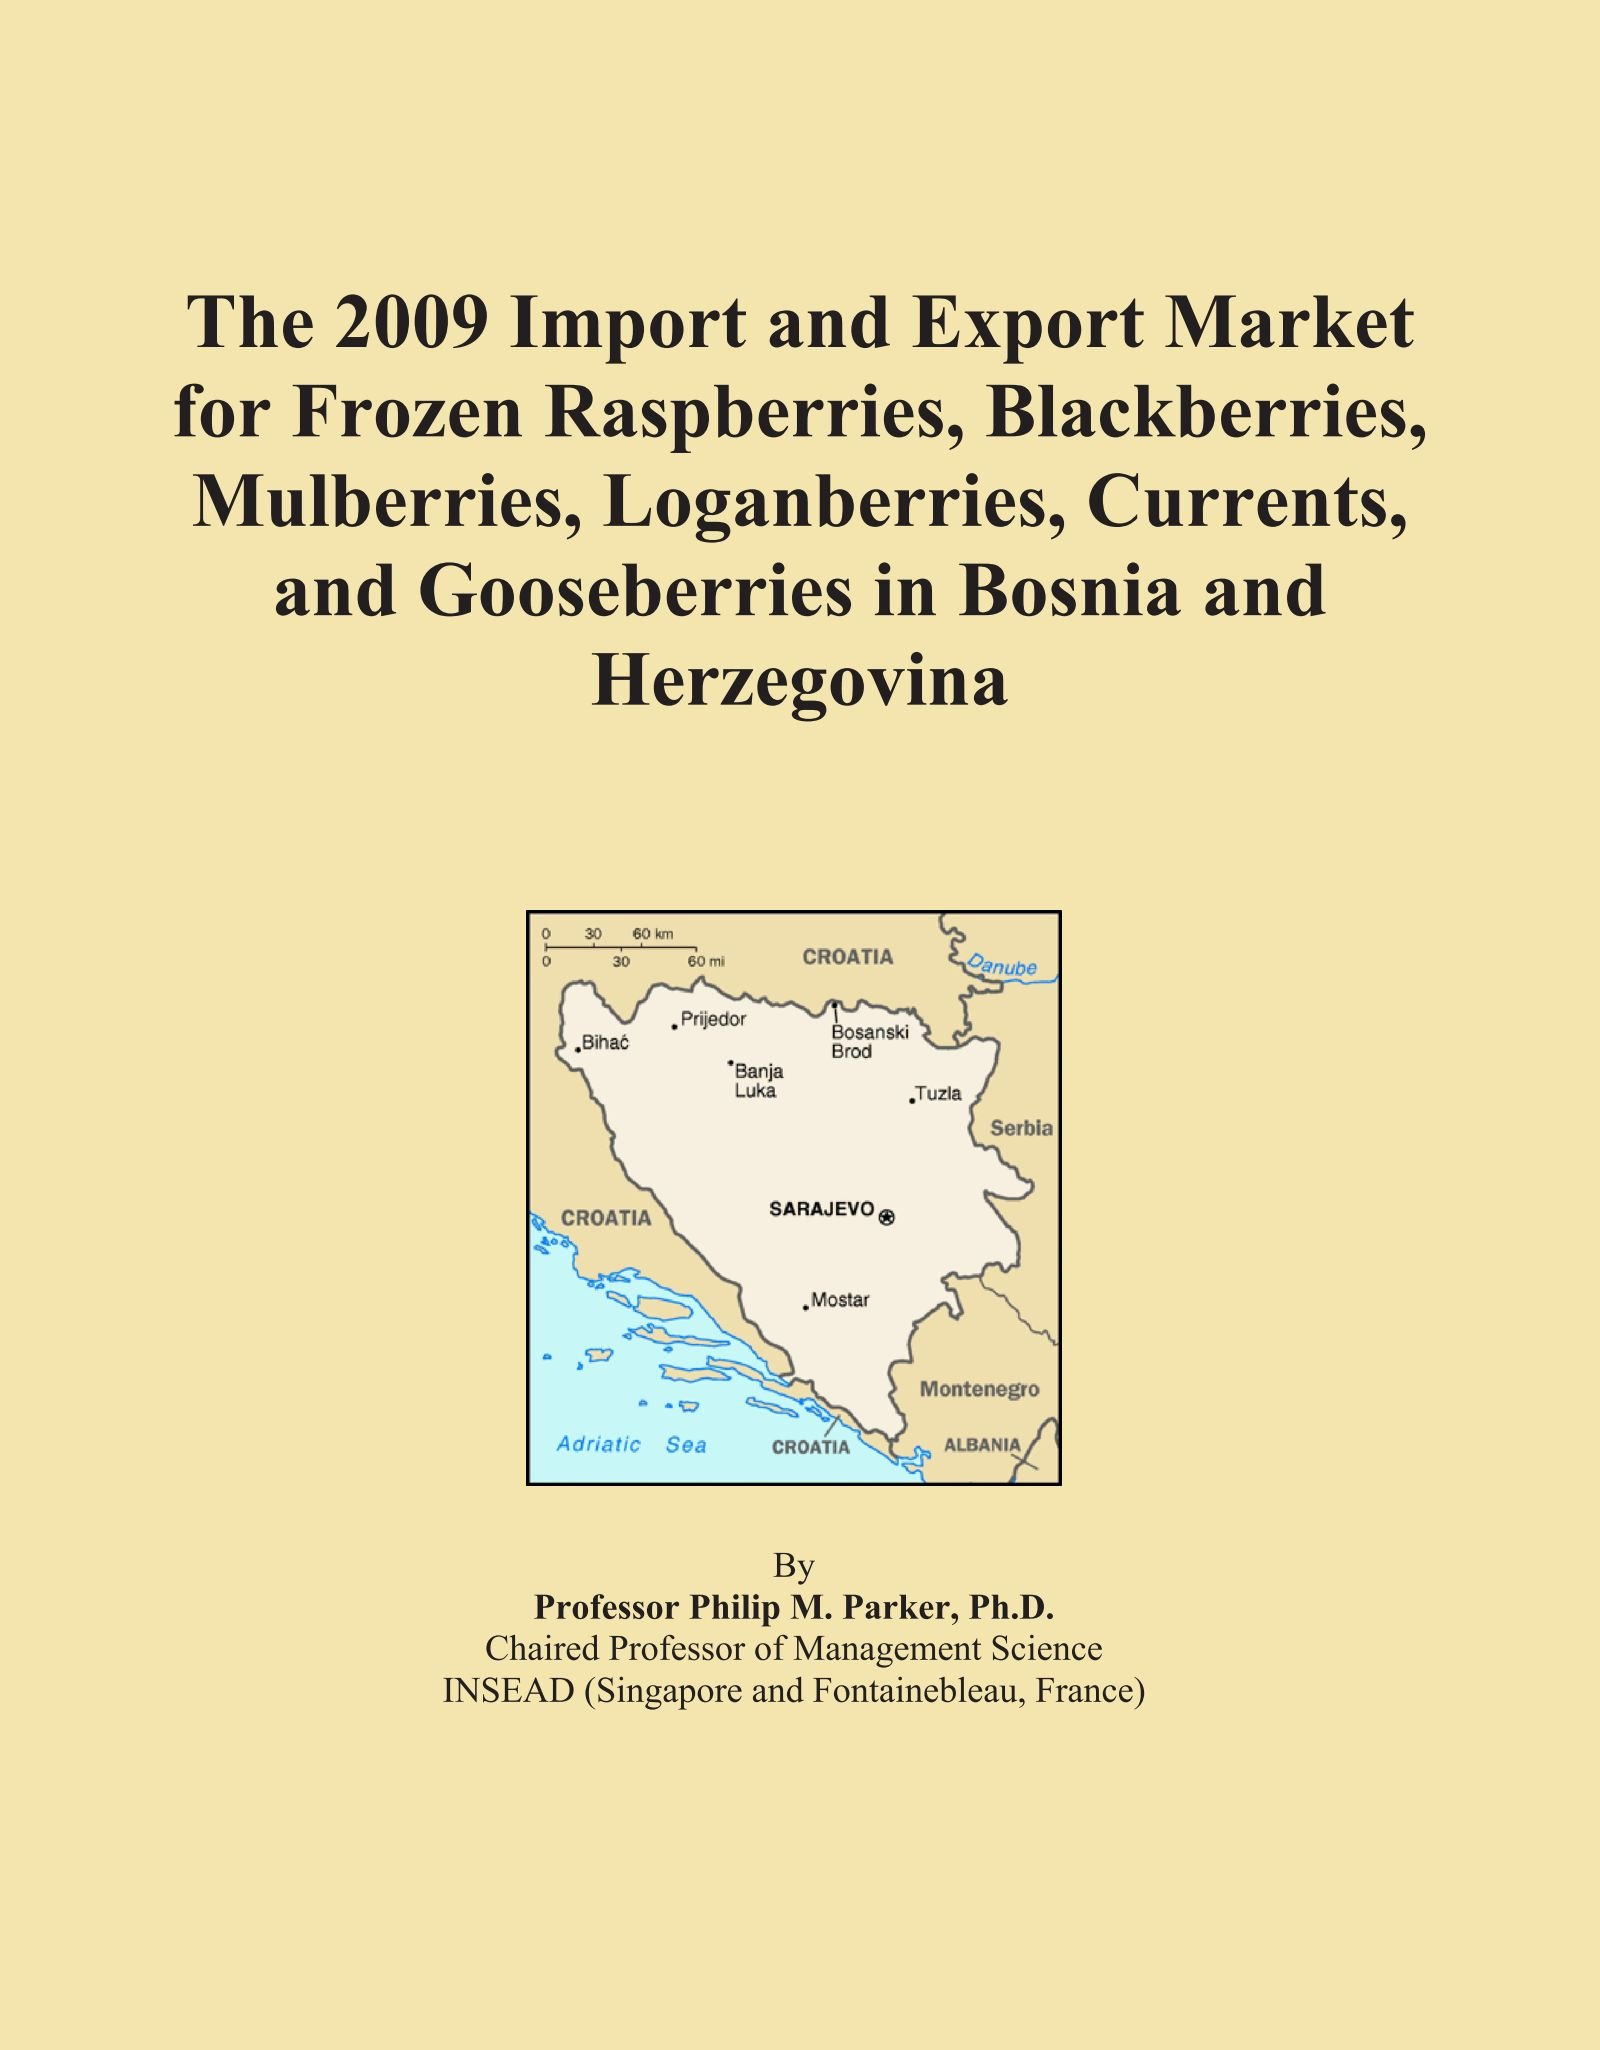 The 2009 Import and Export Market for Frozen Raspberries, Blackberries, Mulberries, Loganberries, Currents, and Gooseberries in Bosnia and Herzegovina ebook